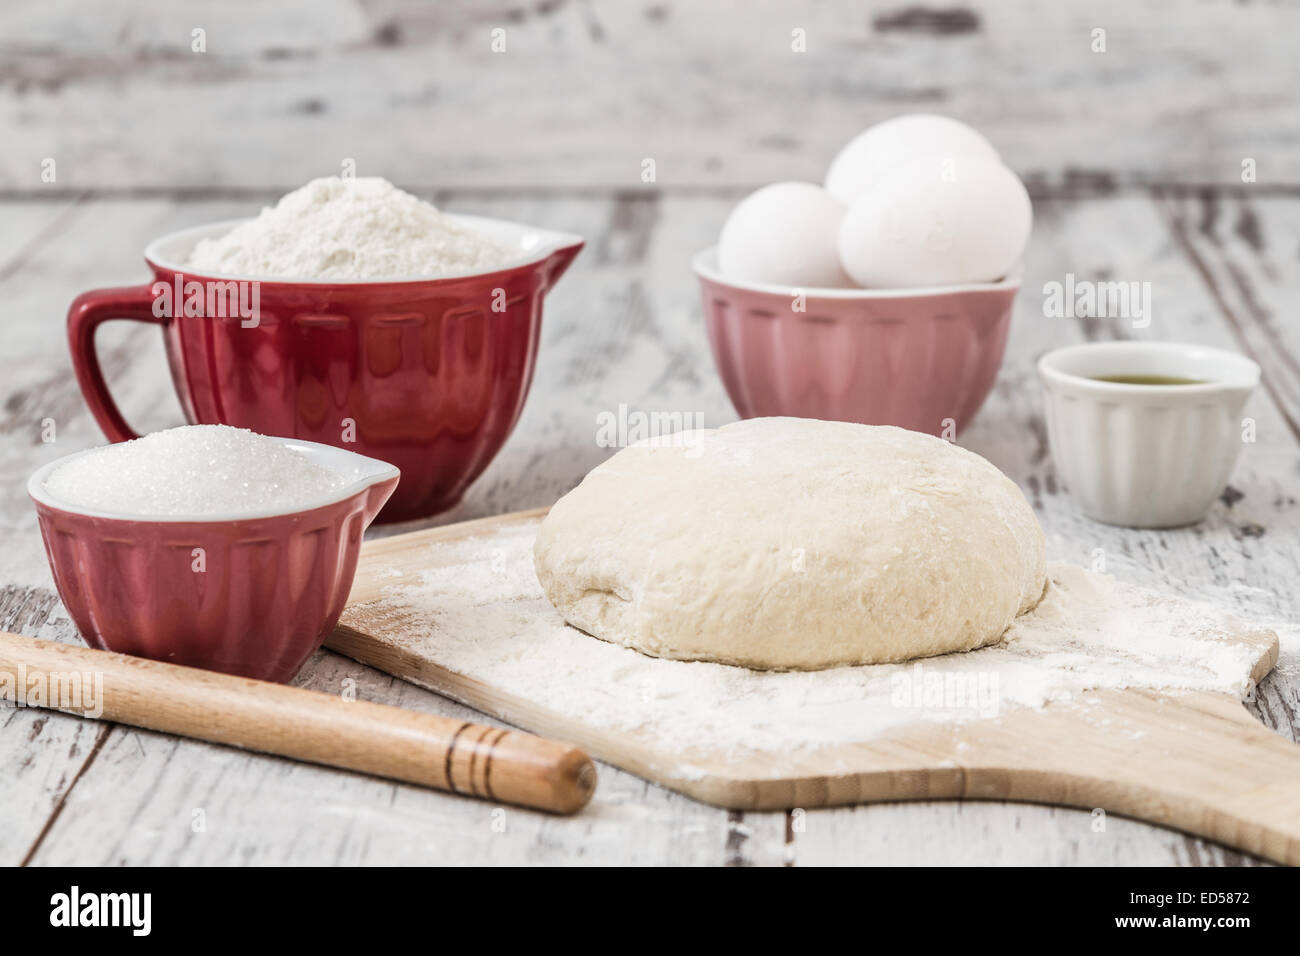 Dough recipe ingredients like eggs, flour, oil, sugar on white wooden table - Stock Image